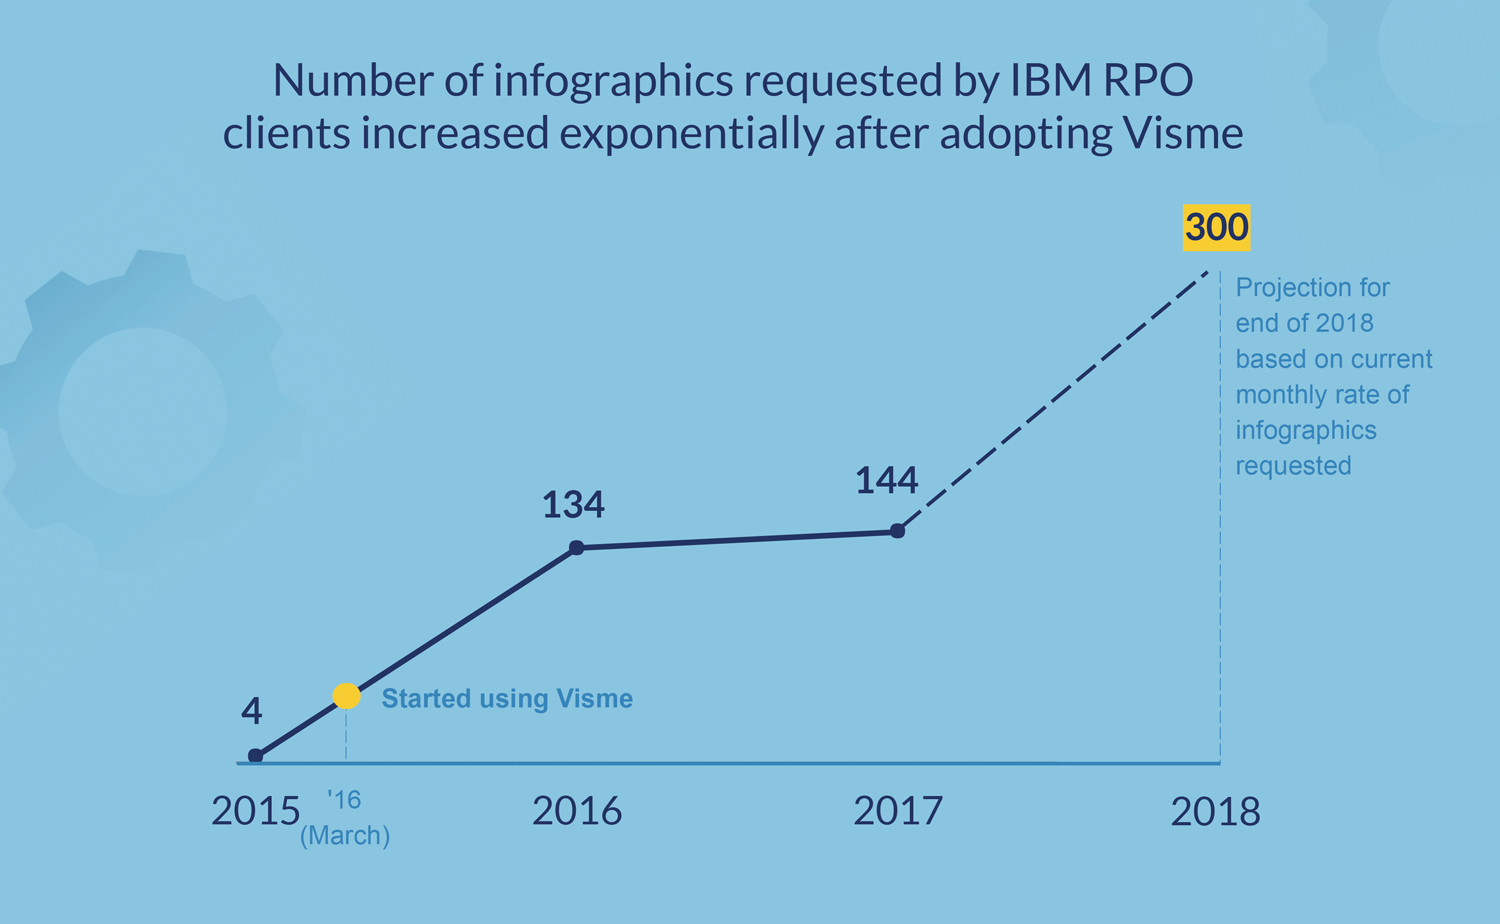 number of infographics requested by IBM RPO clients increased exponentially after adopting visme